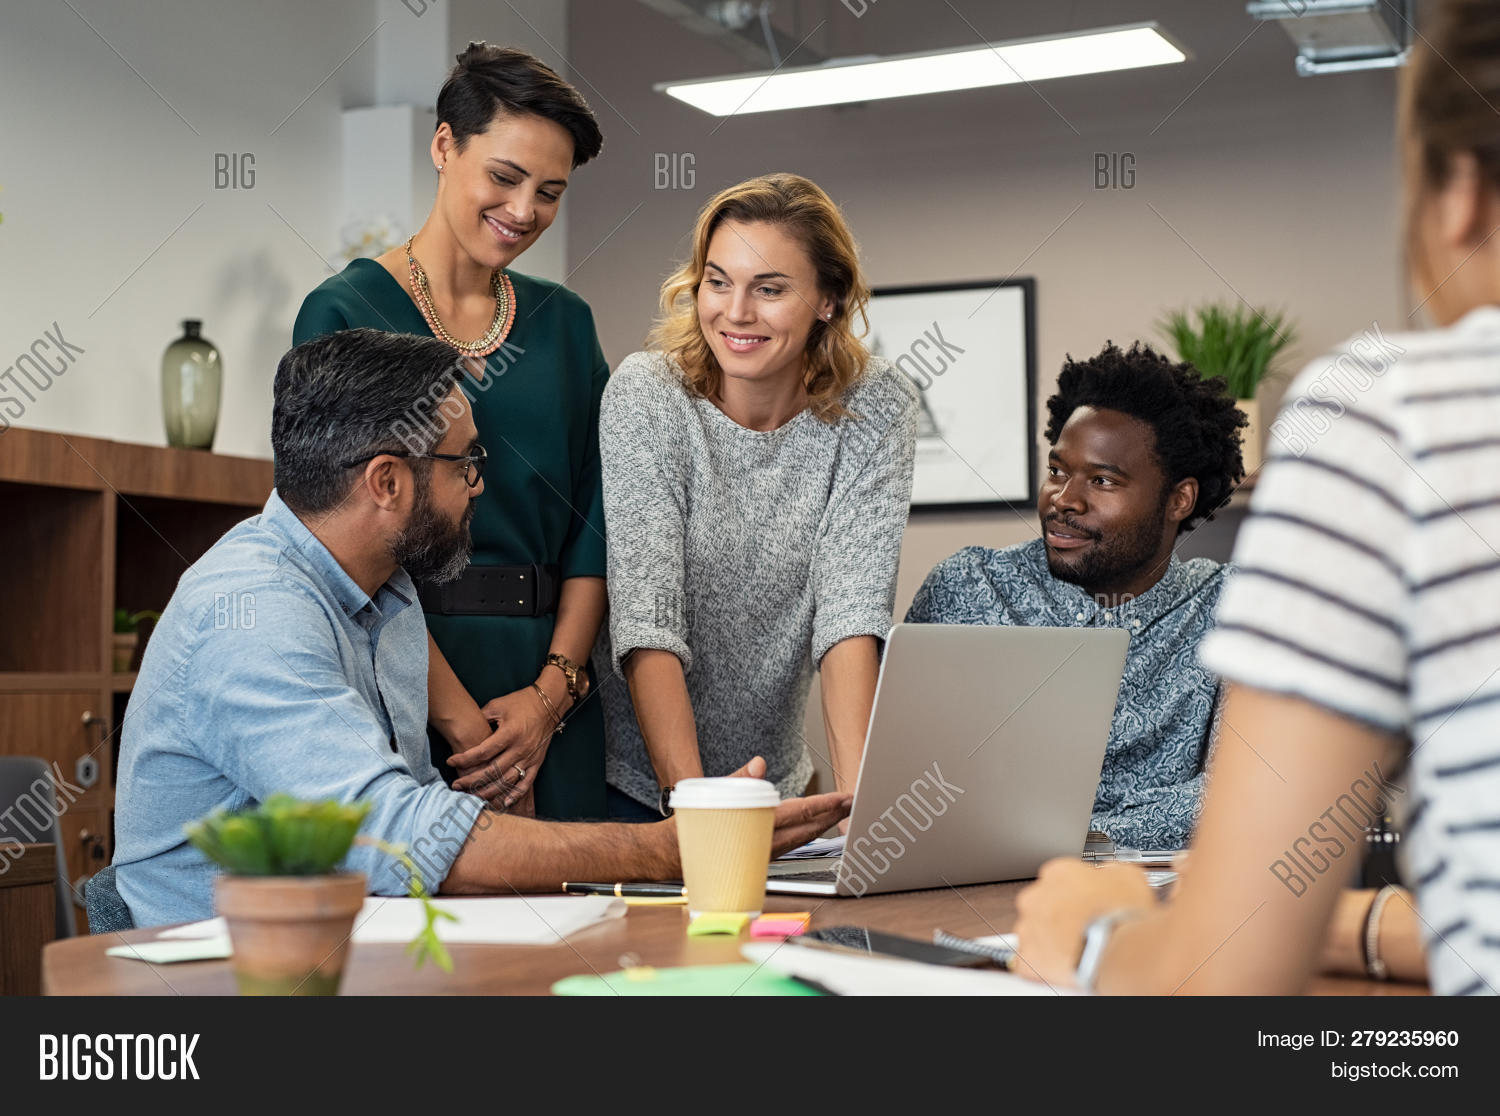 Multiethnic business people talking and smiling during meeting in office. Mature middle eastern man